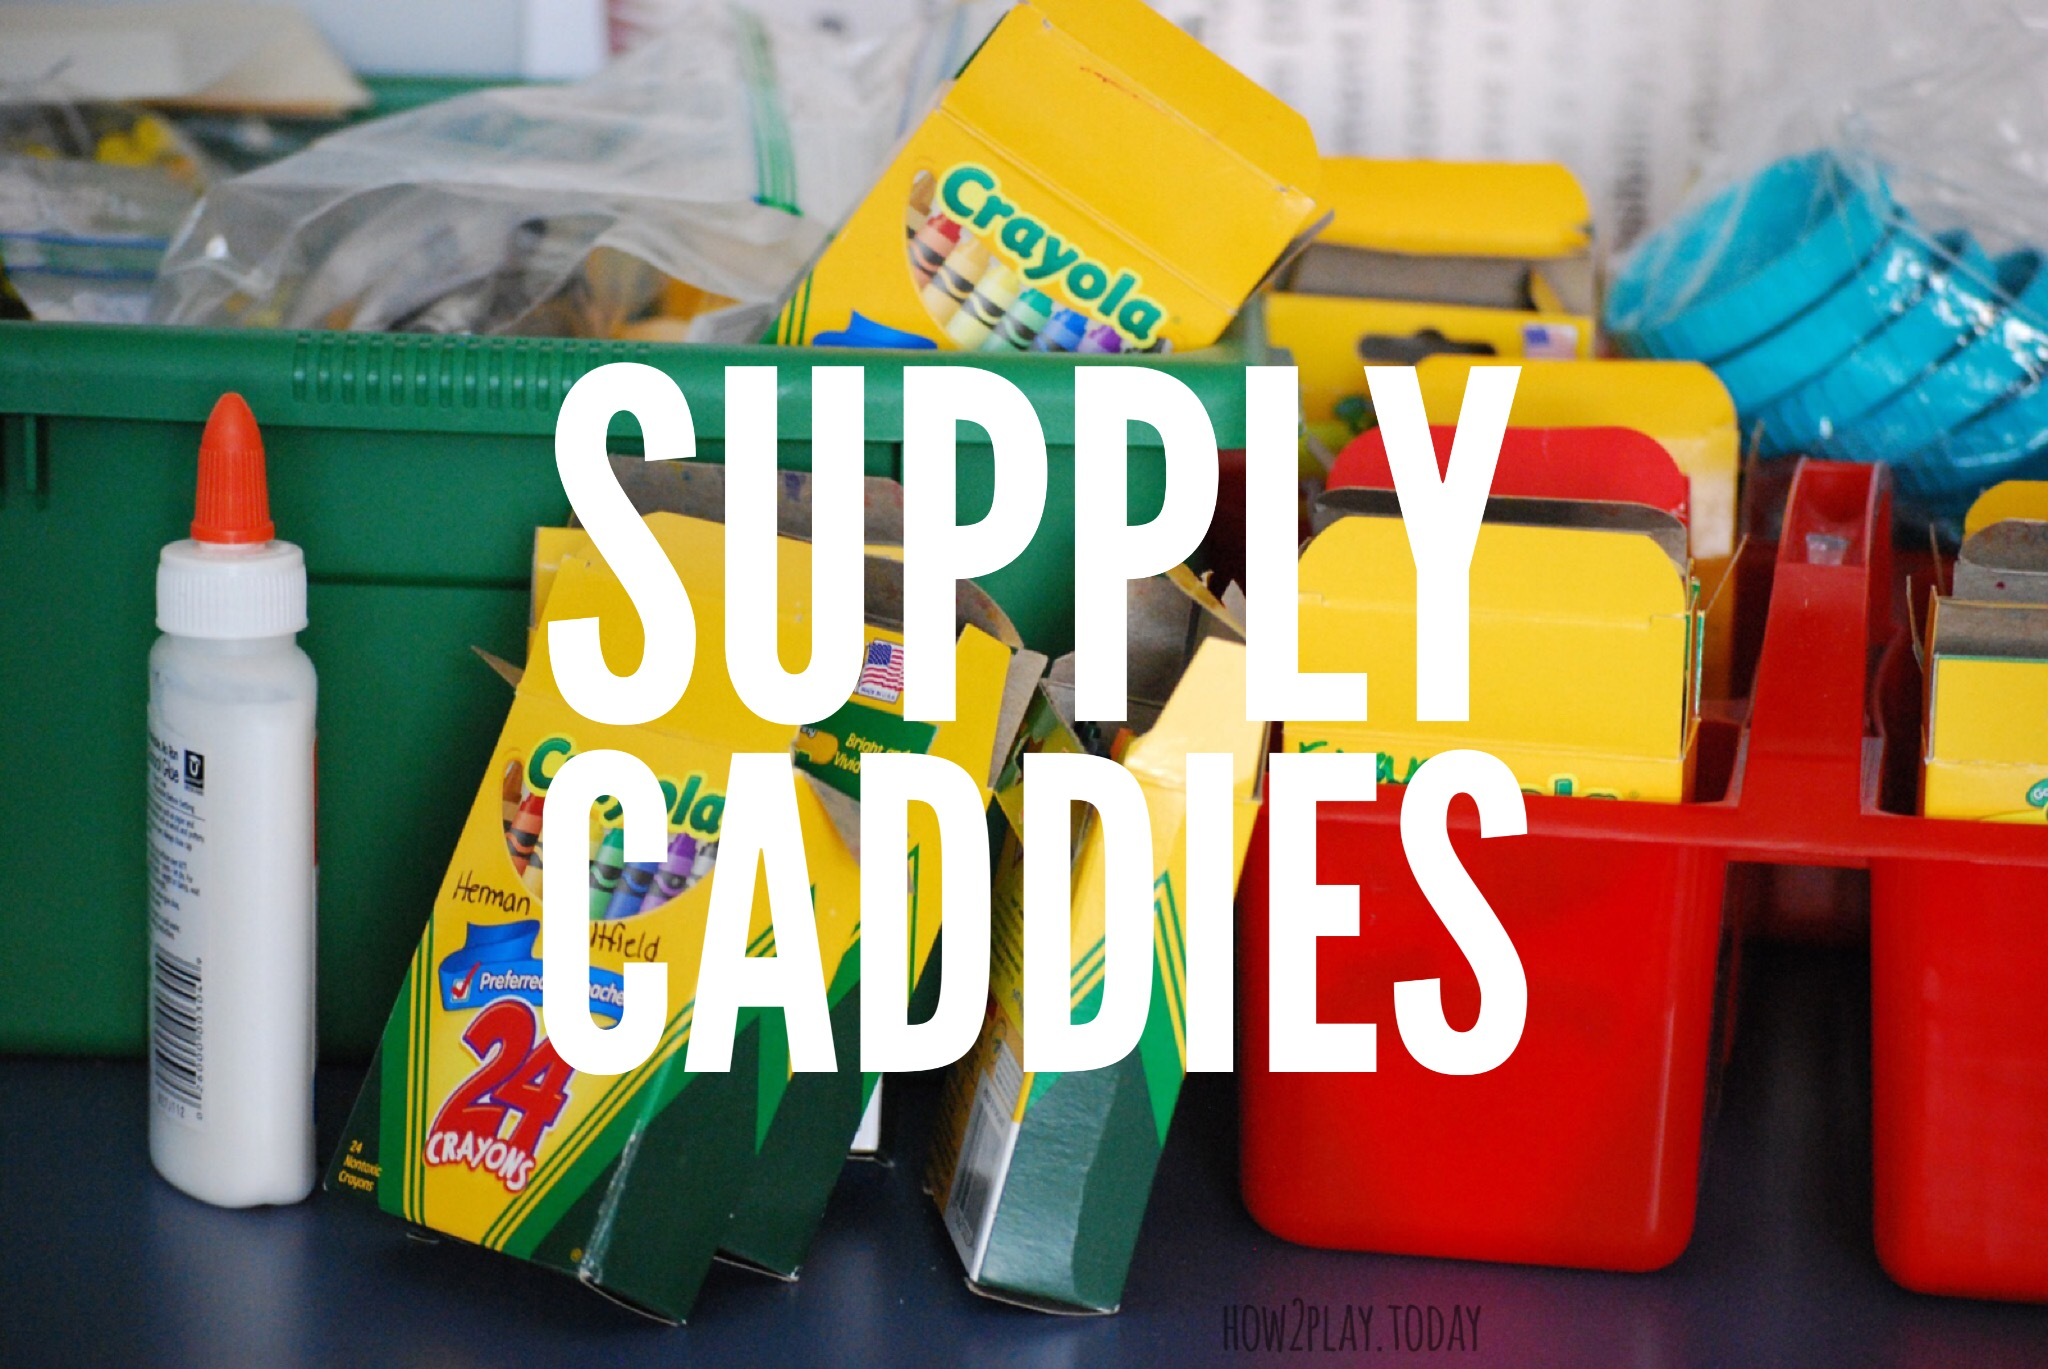 How to organize your kids craft supplies. Art and Crafts can be so much fun for you and your little ones but the supplies add up. Here are a few ideas of how you can organize the supplies and clean up your space.